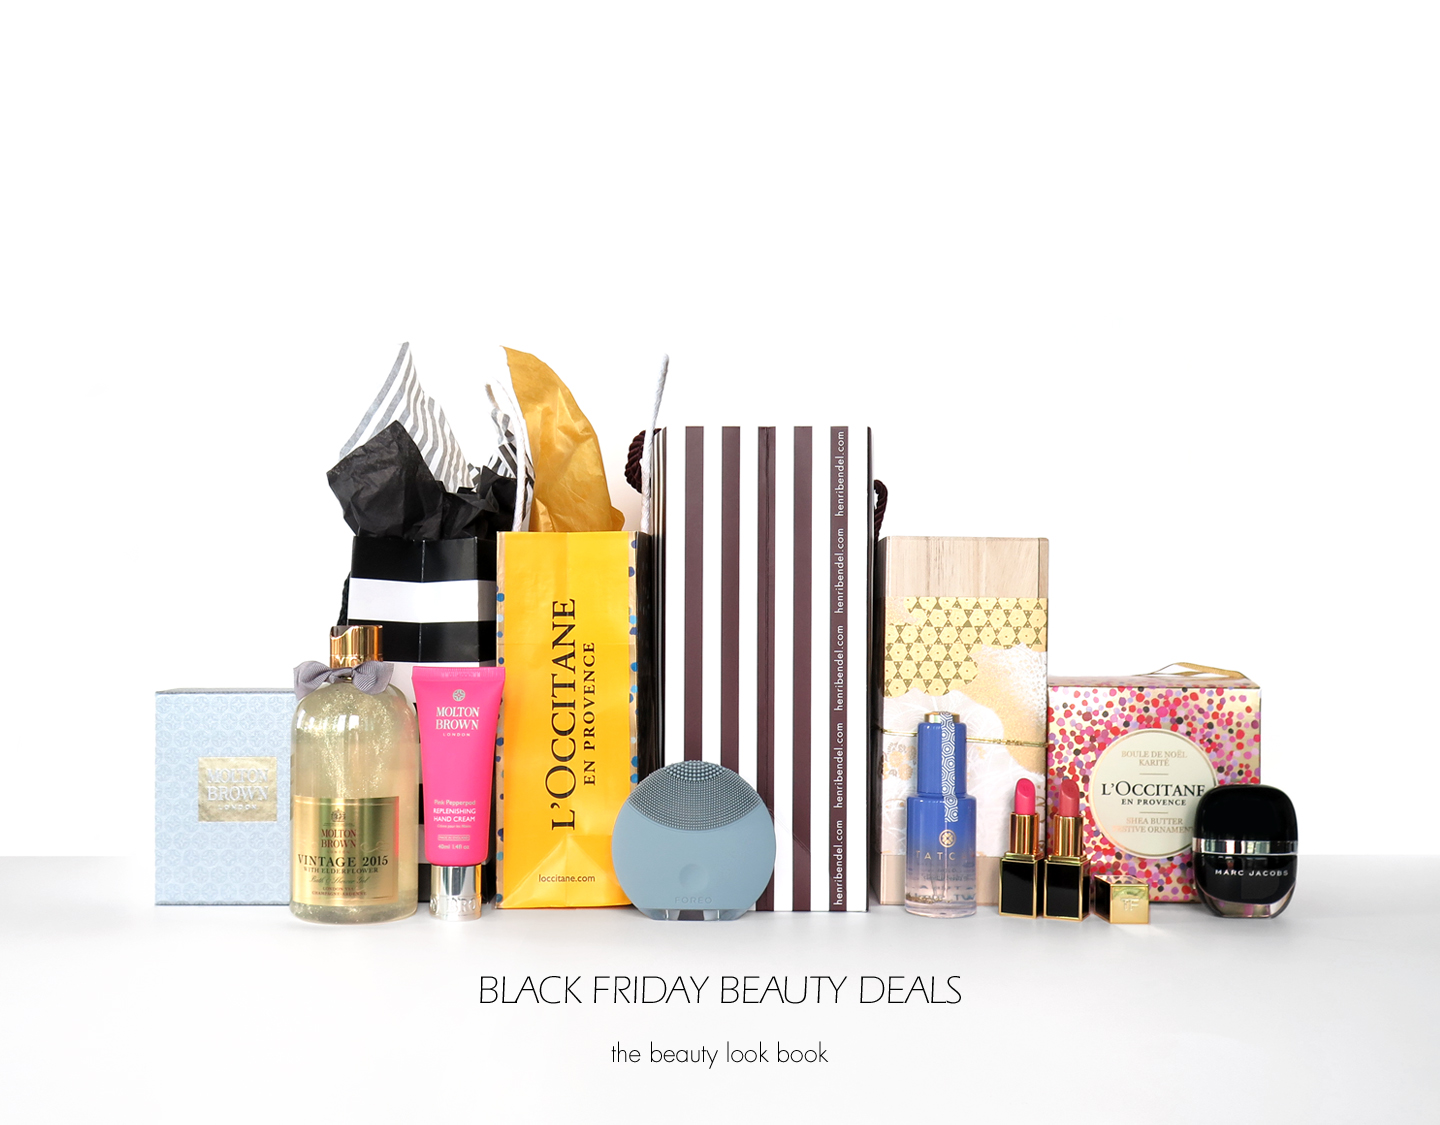 The Best Black Friday BeautyDeals The Best Black Friday BeautyDeals new images